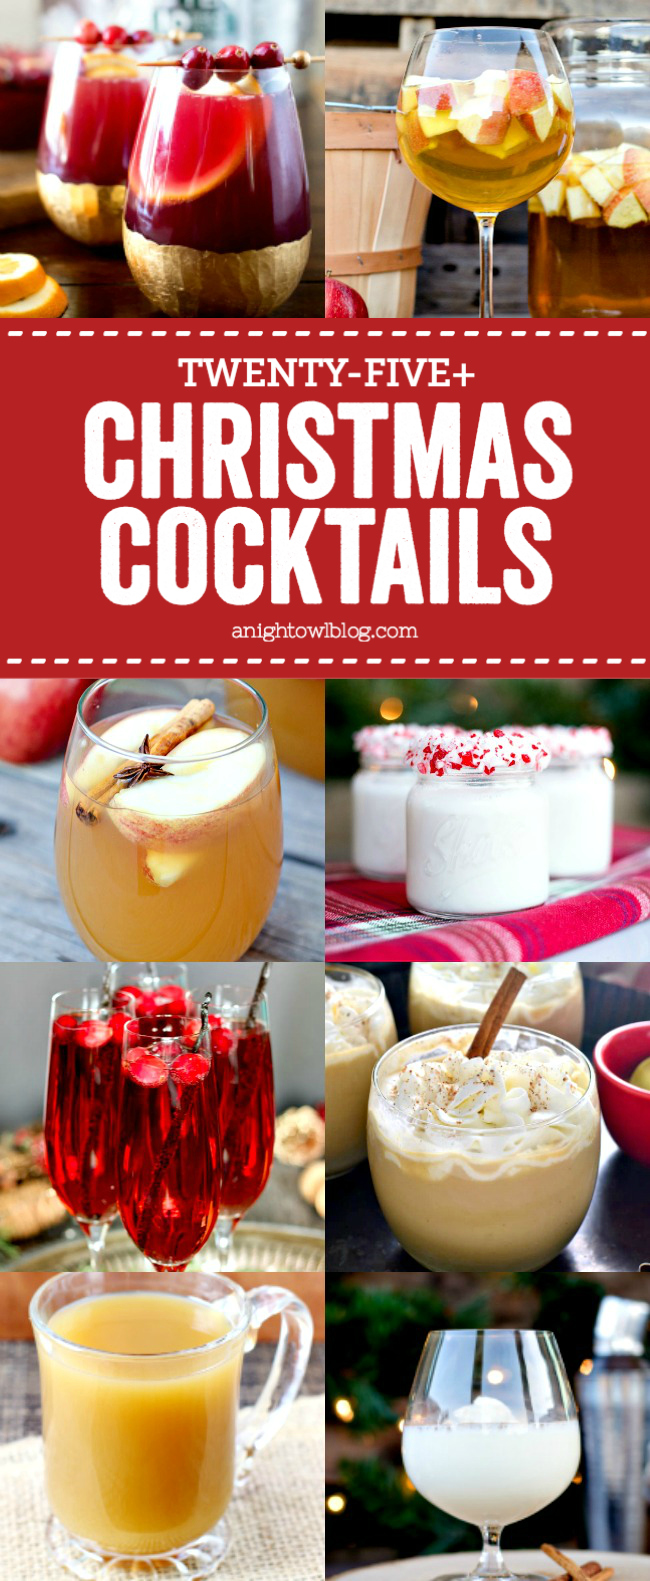 From Easy Cranberry Sangria to a Gingerbread Latte Martini, discover 25+ Christmas Cocktails perfect for your holiday festivities!